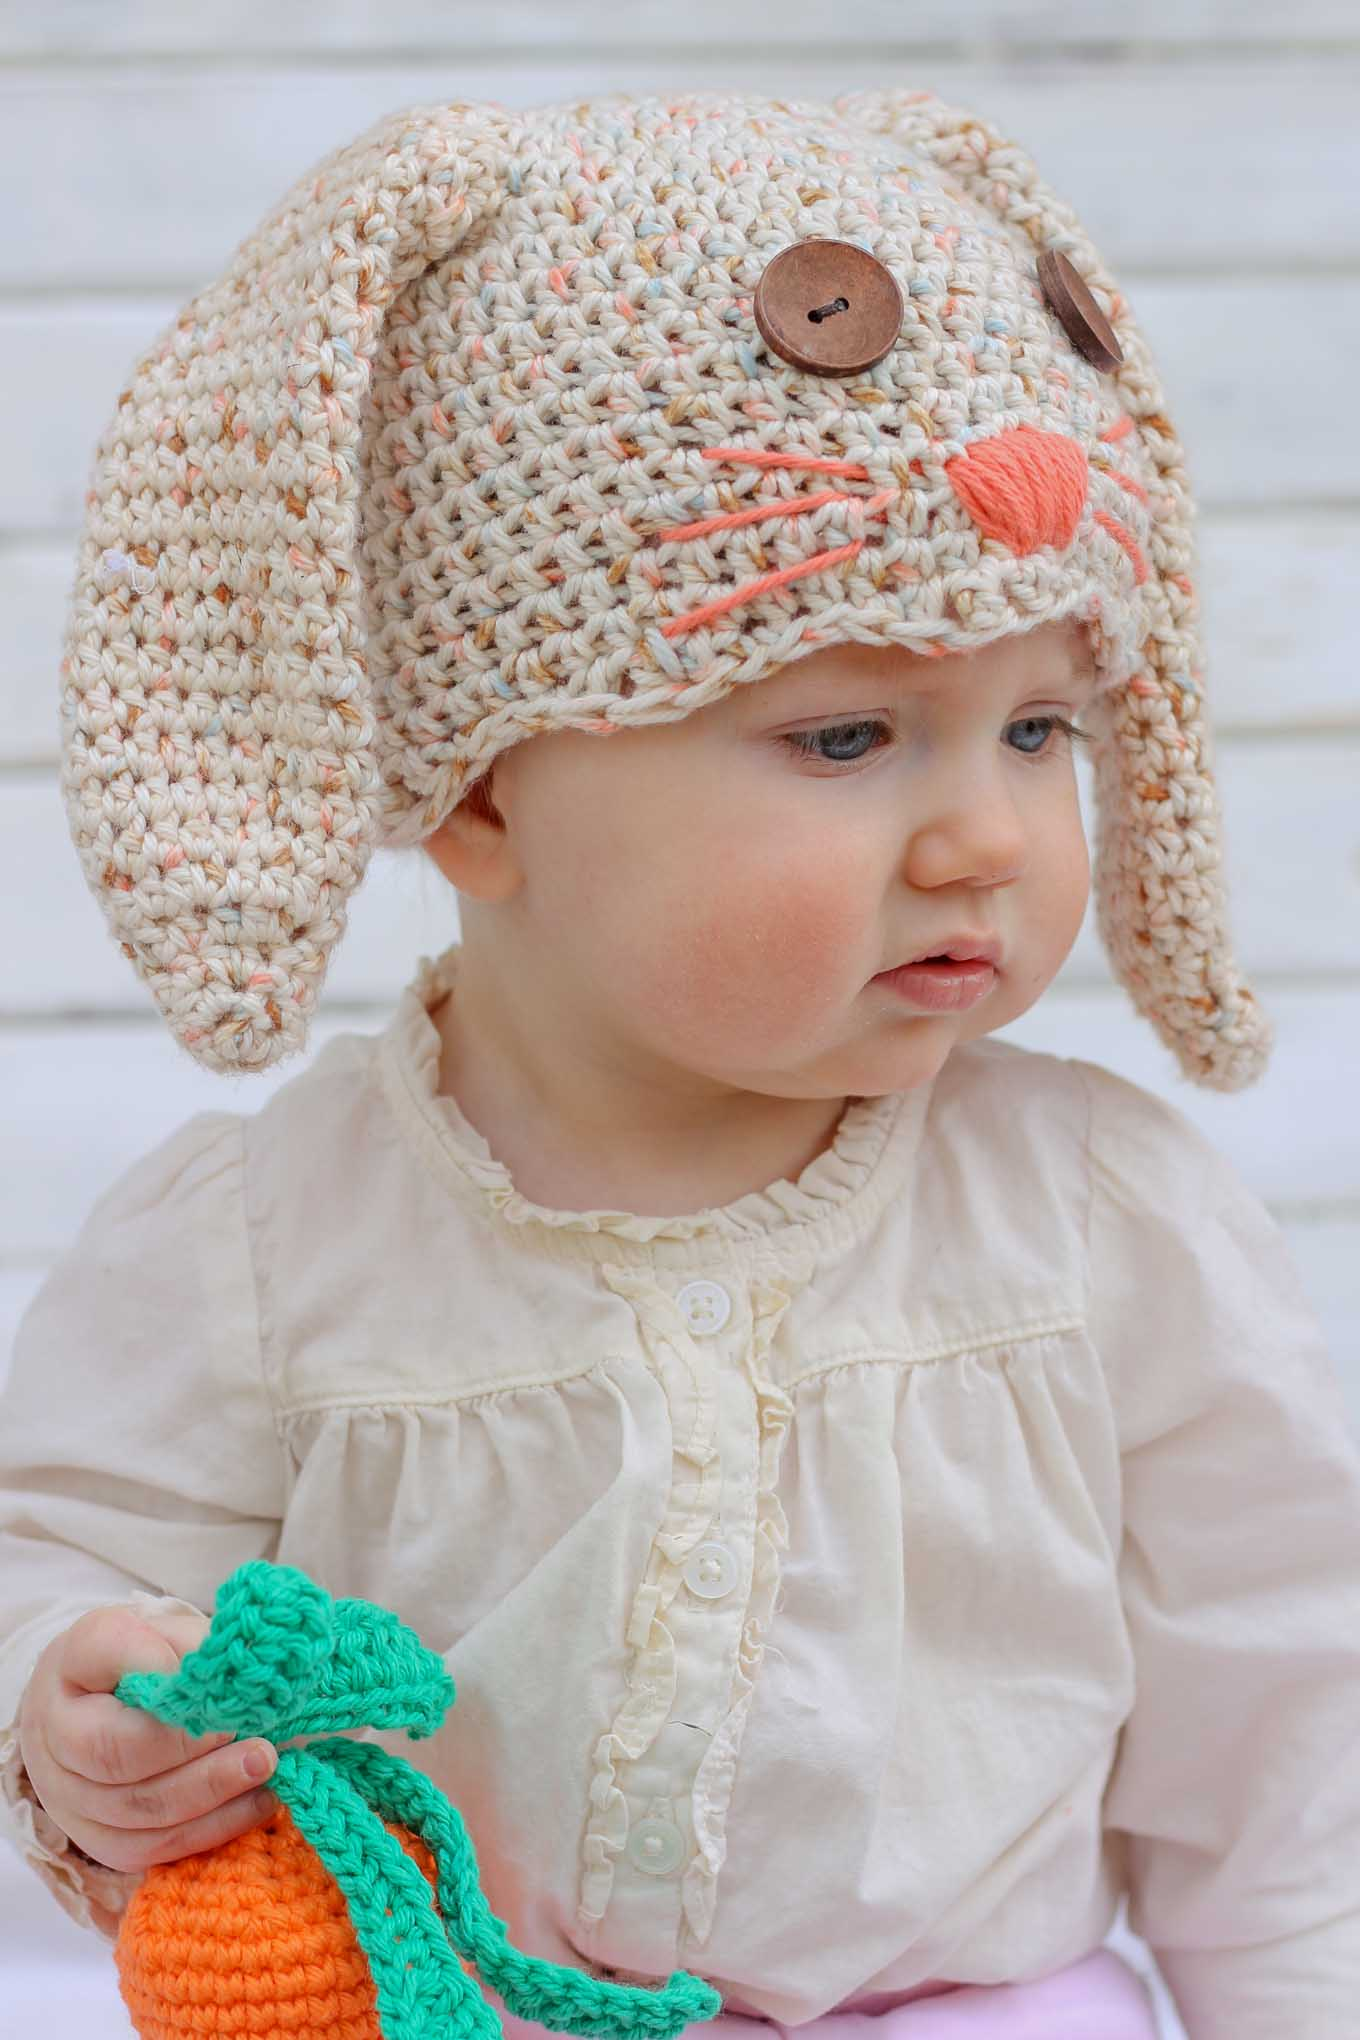 abb8600e218 ... favorite baby or toddler. Free-crochet-bunny-hat-pattern-toddler-4